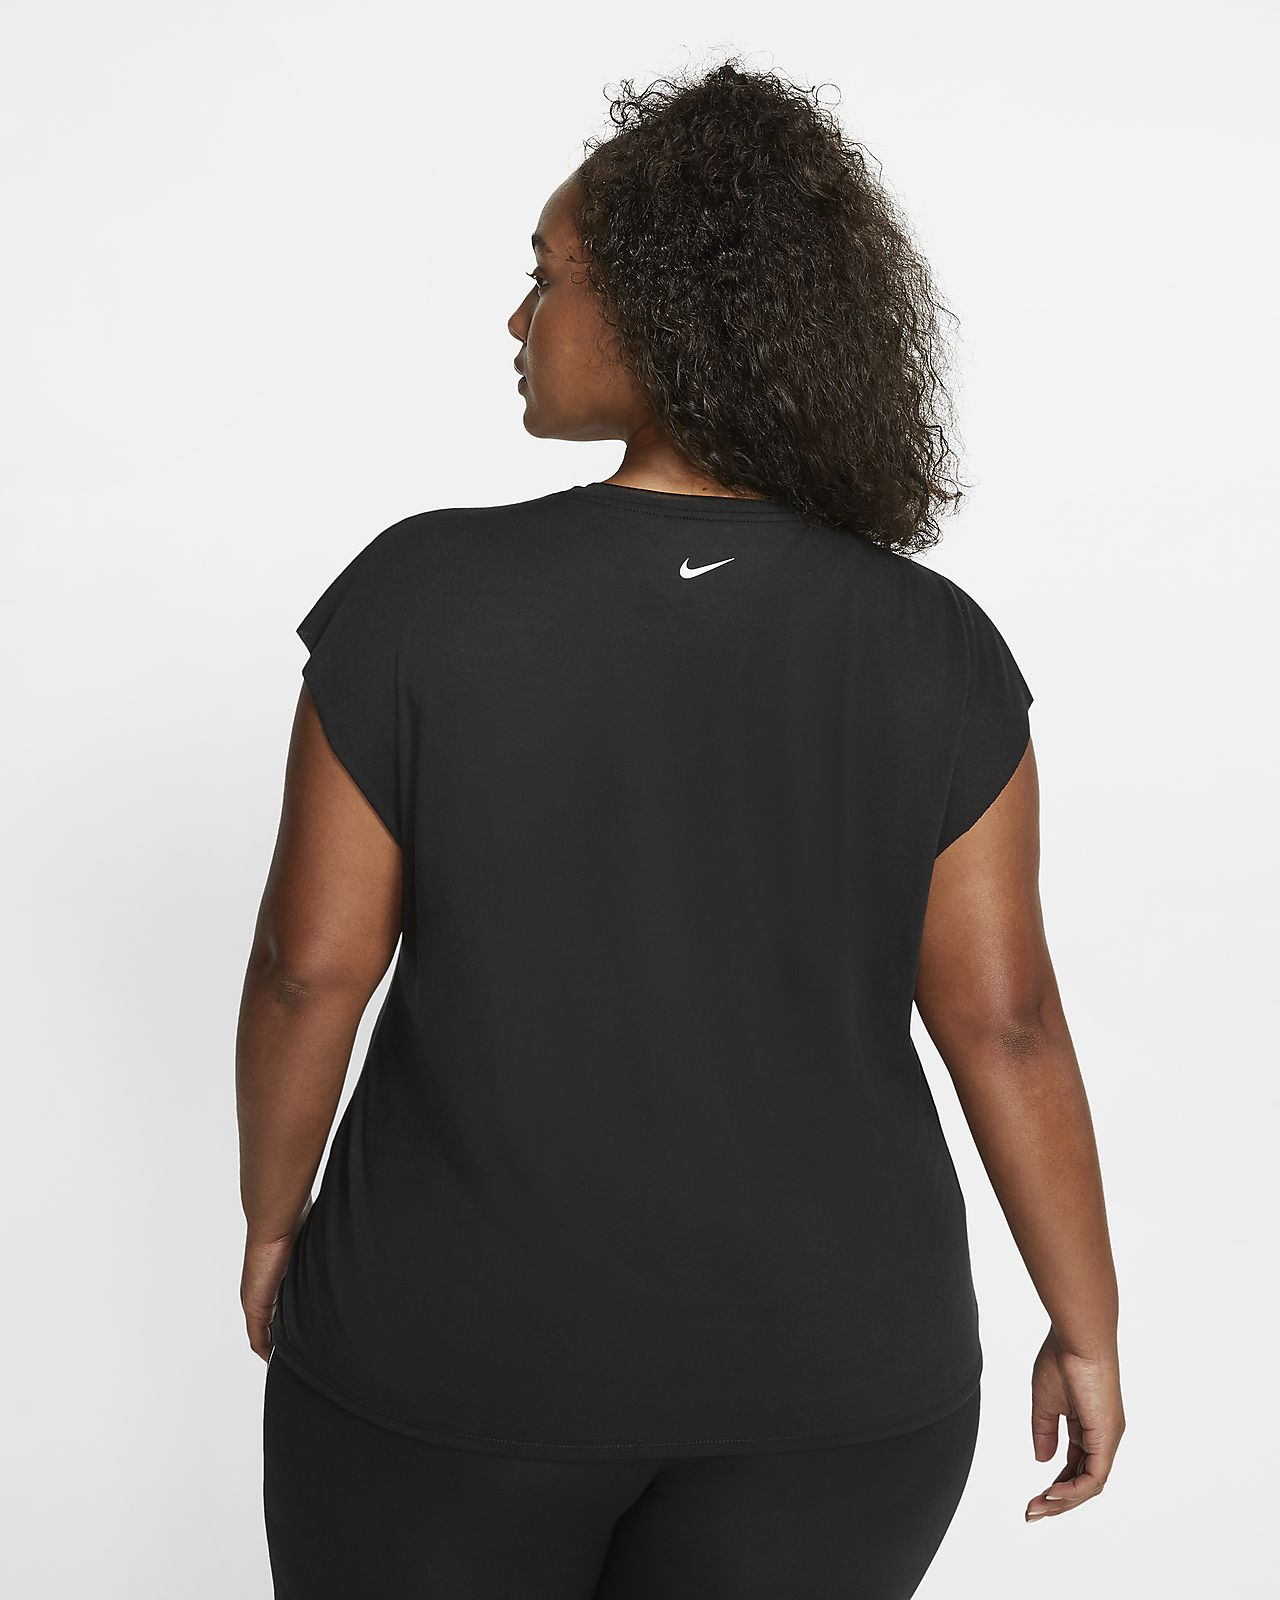 Nike Dri FIT Women's Short Sleeve Graphic Training Top (Plus Size)